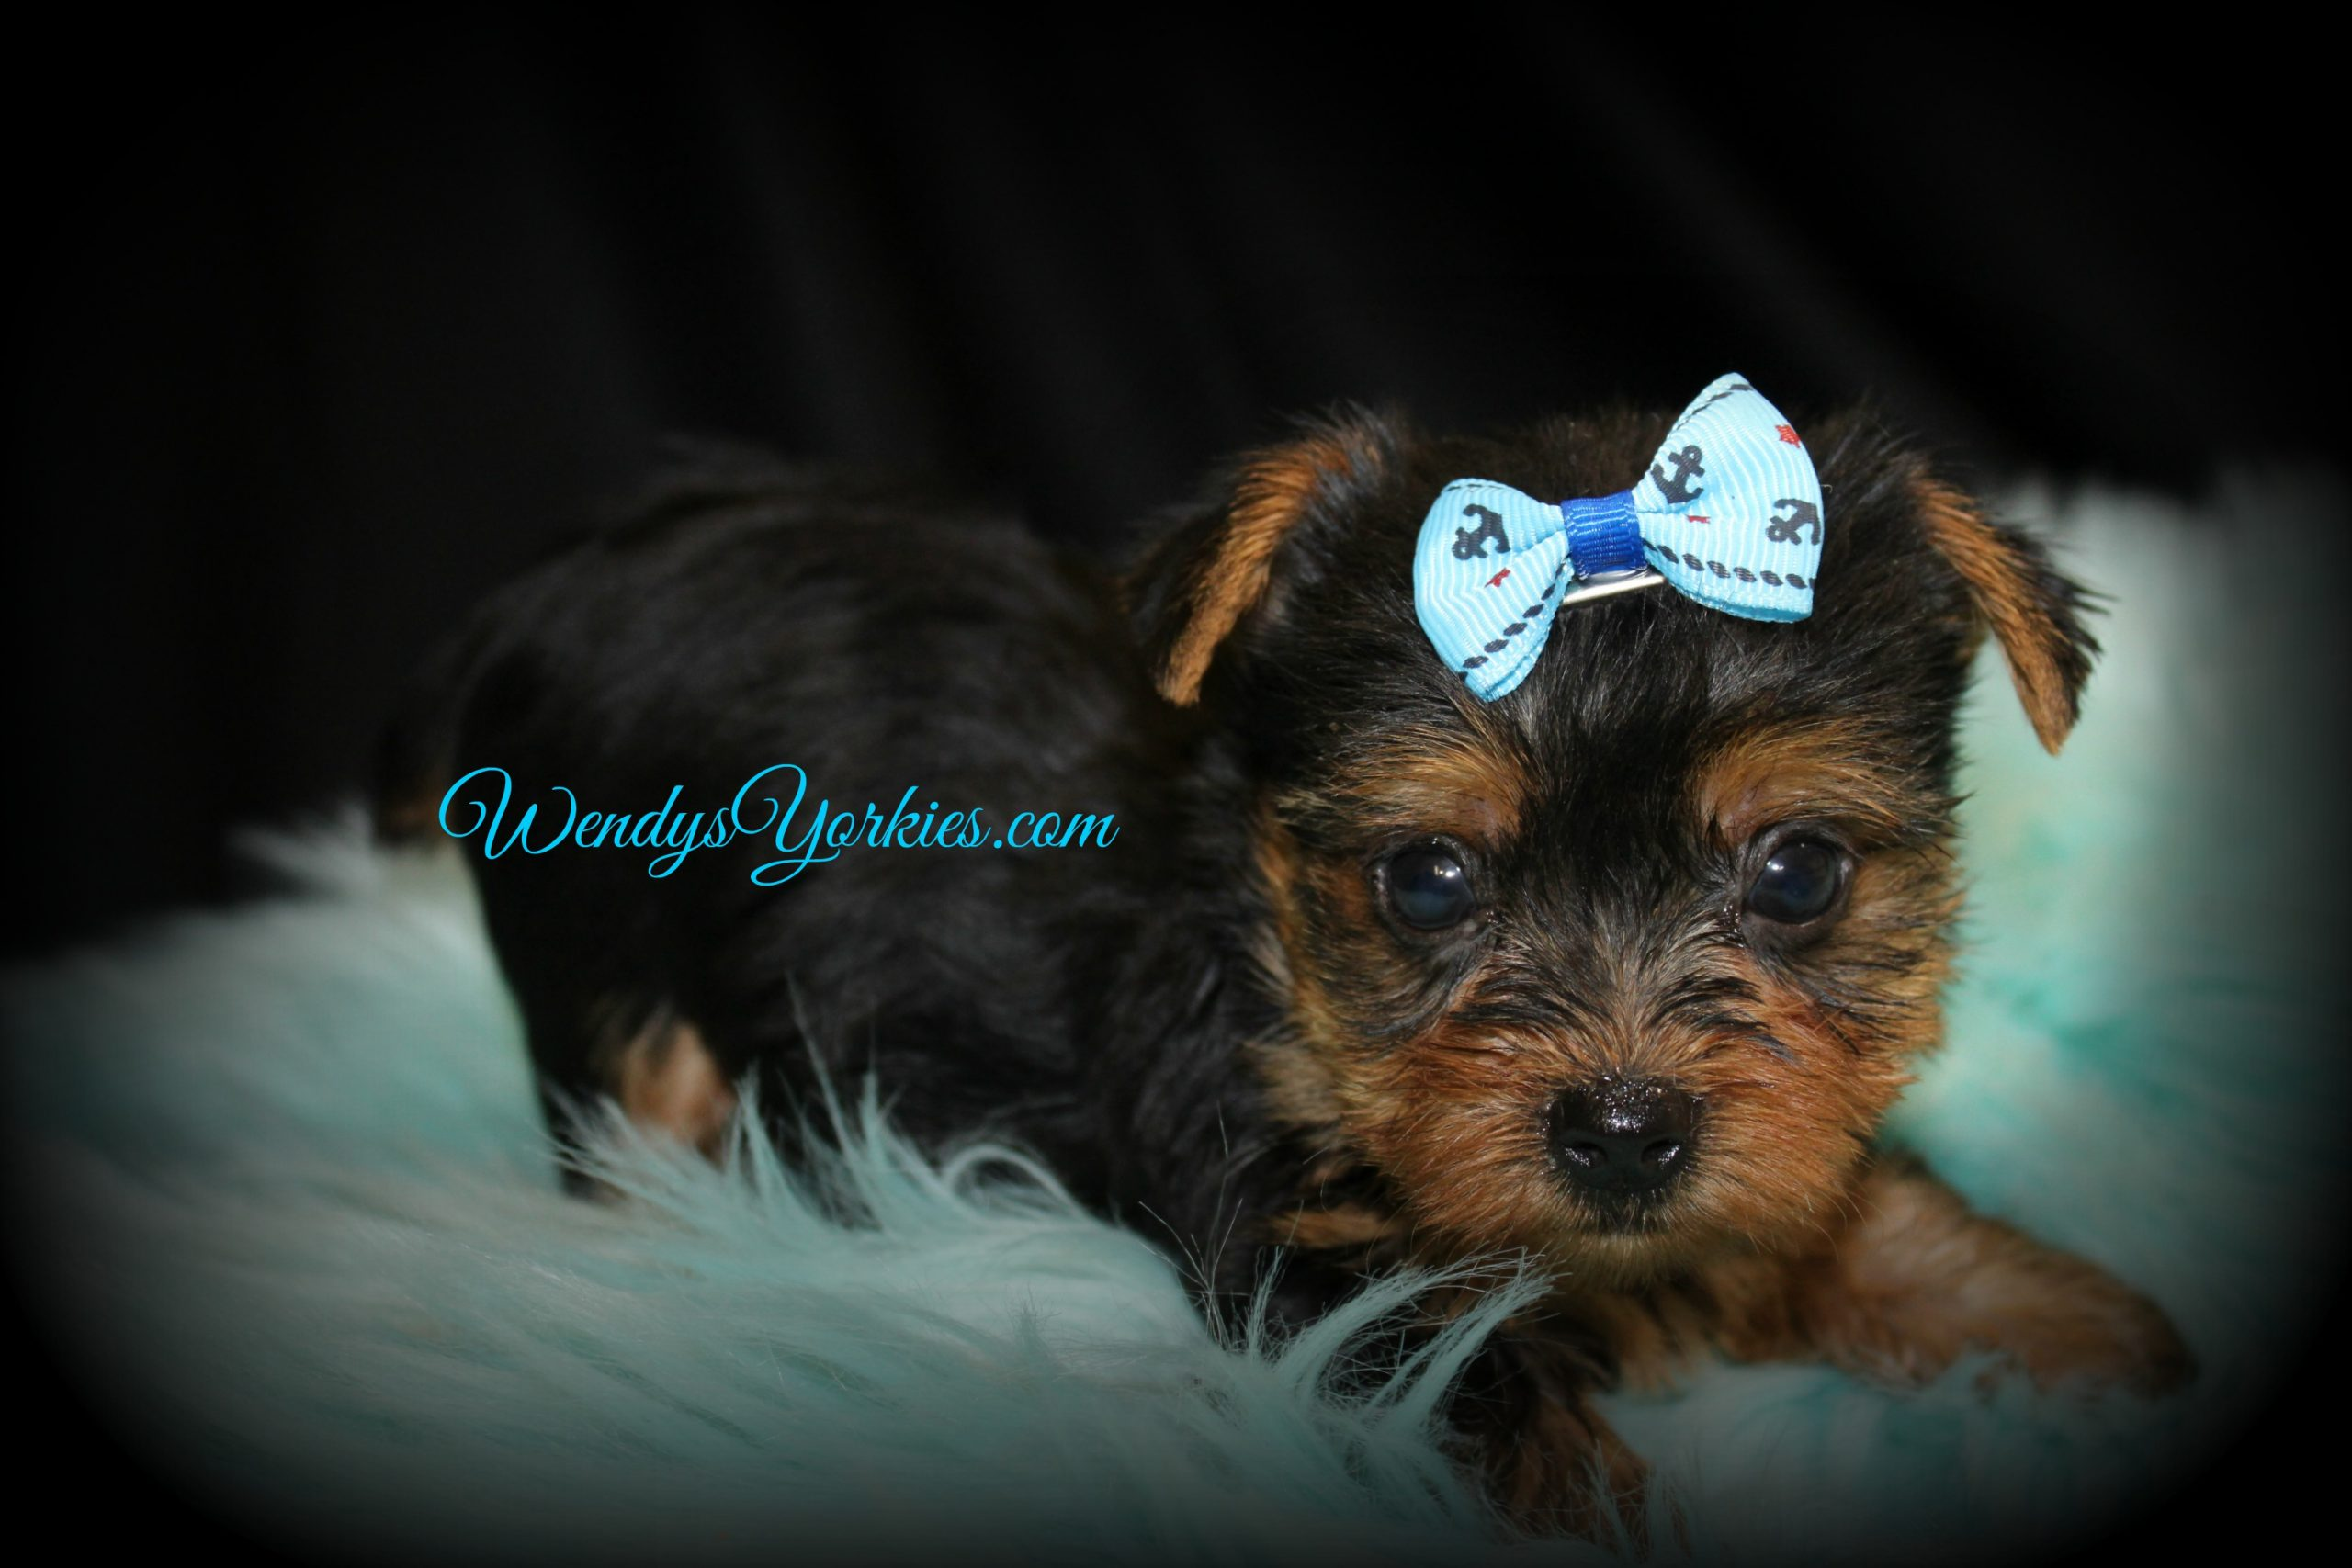 Male Yorkie puppy for sale, Grace m1, WendysYorkies.com